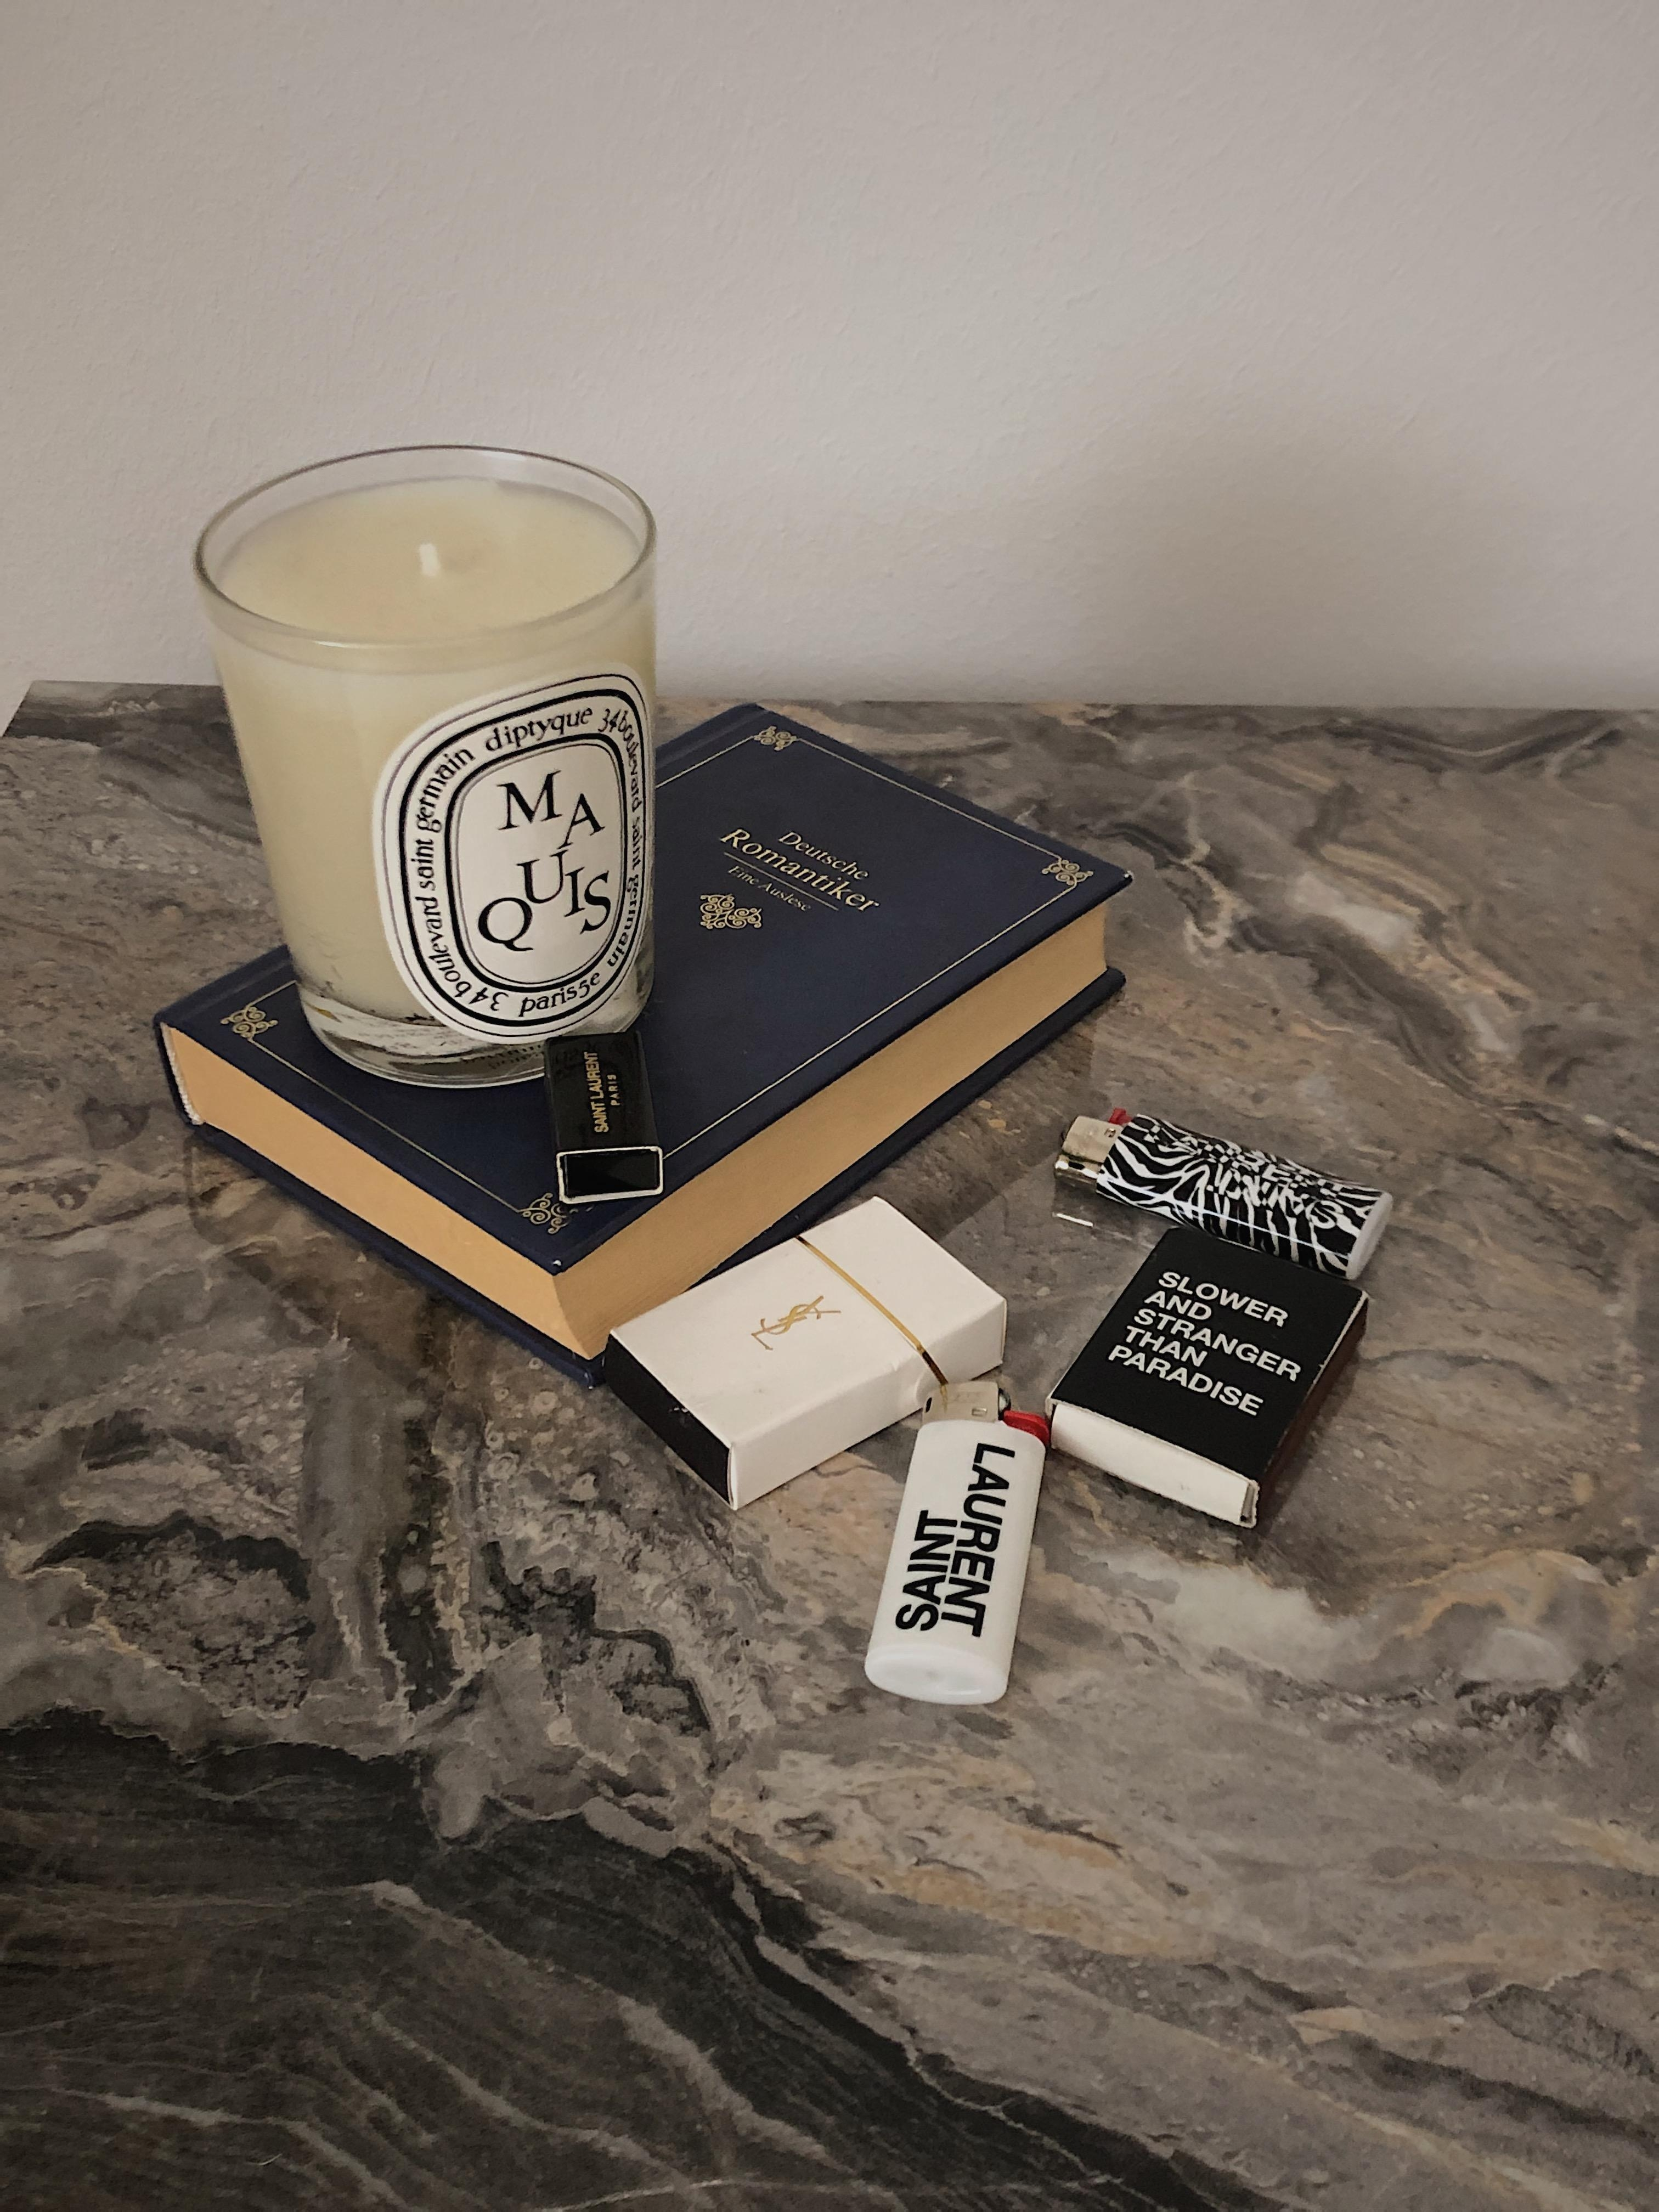 Slower and stranger than paradise 💫